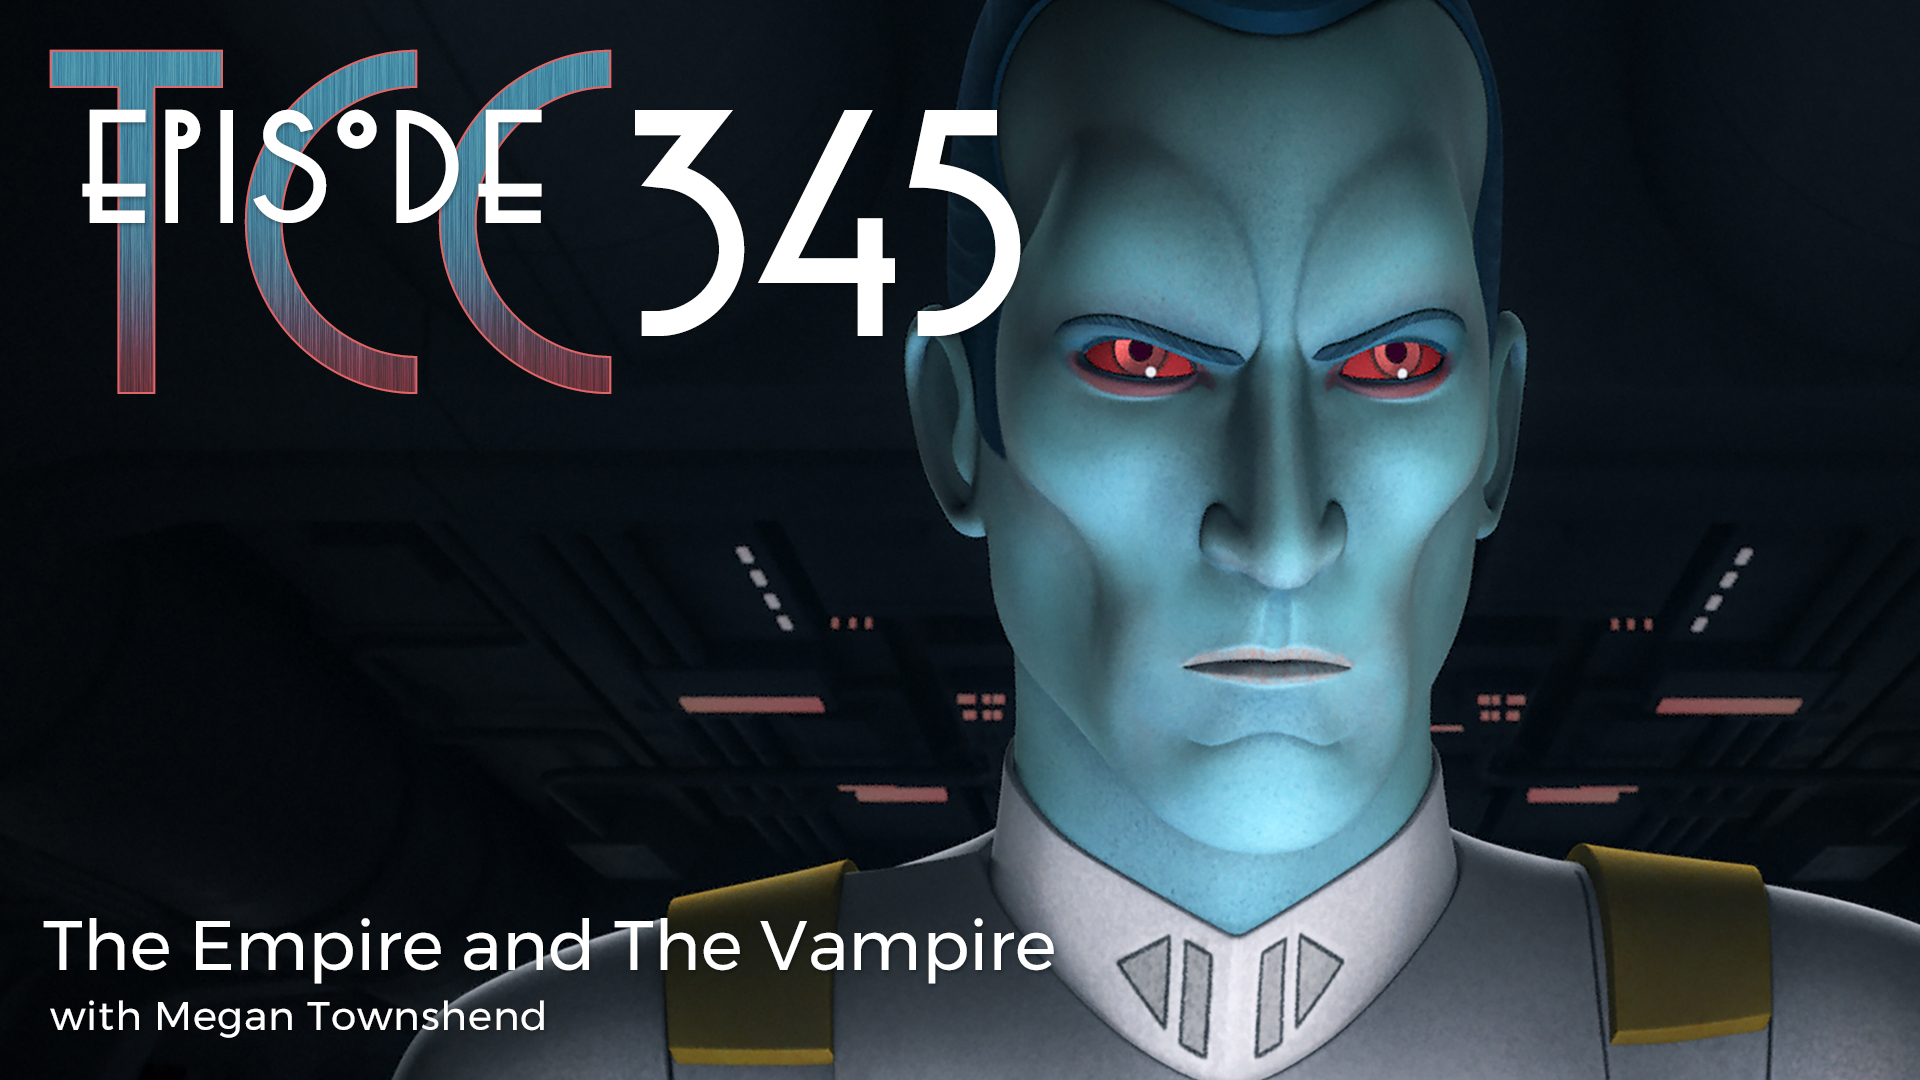 The Citadel Cafe 345: The Empire and The Vampire